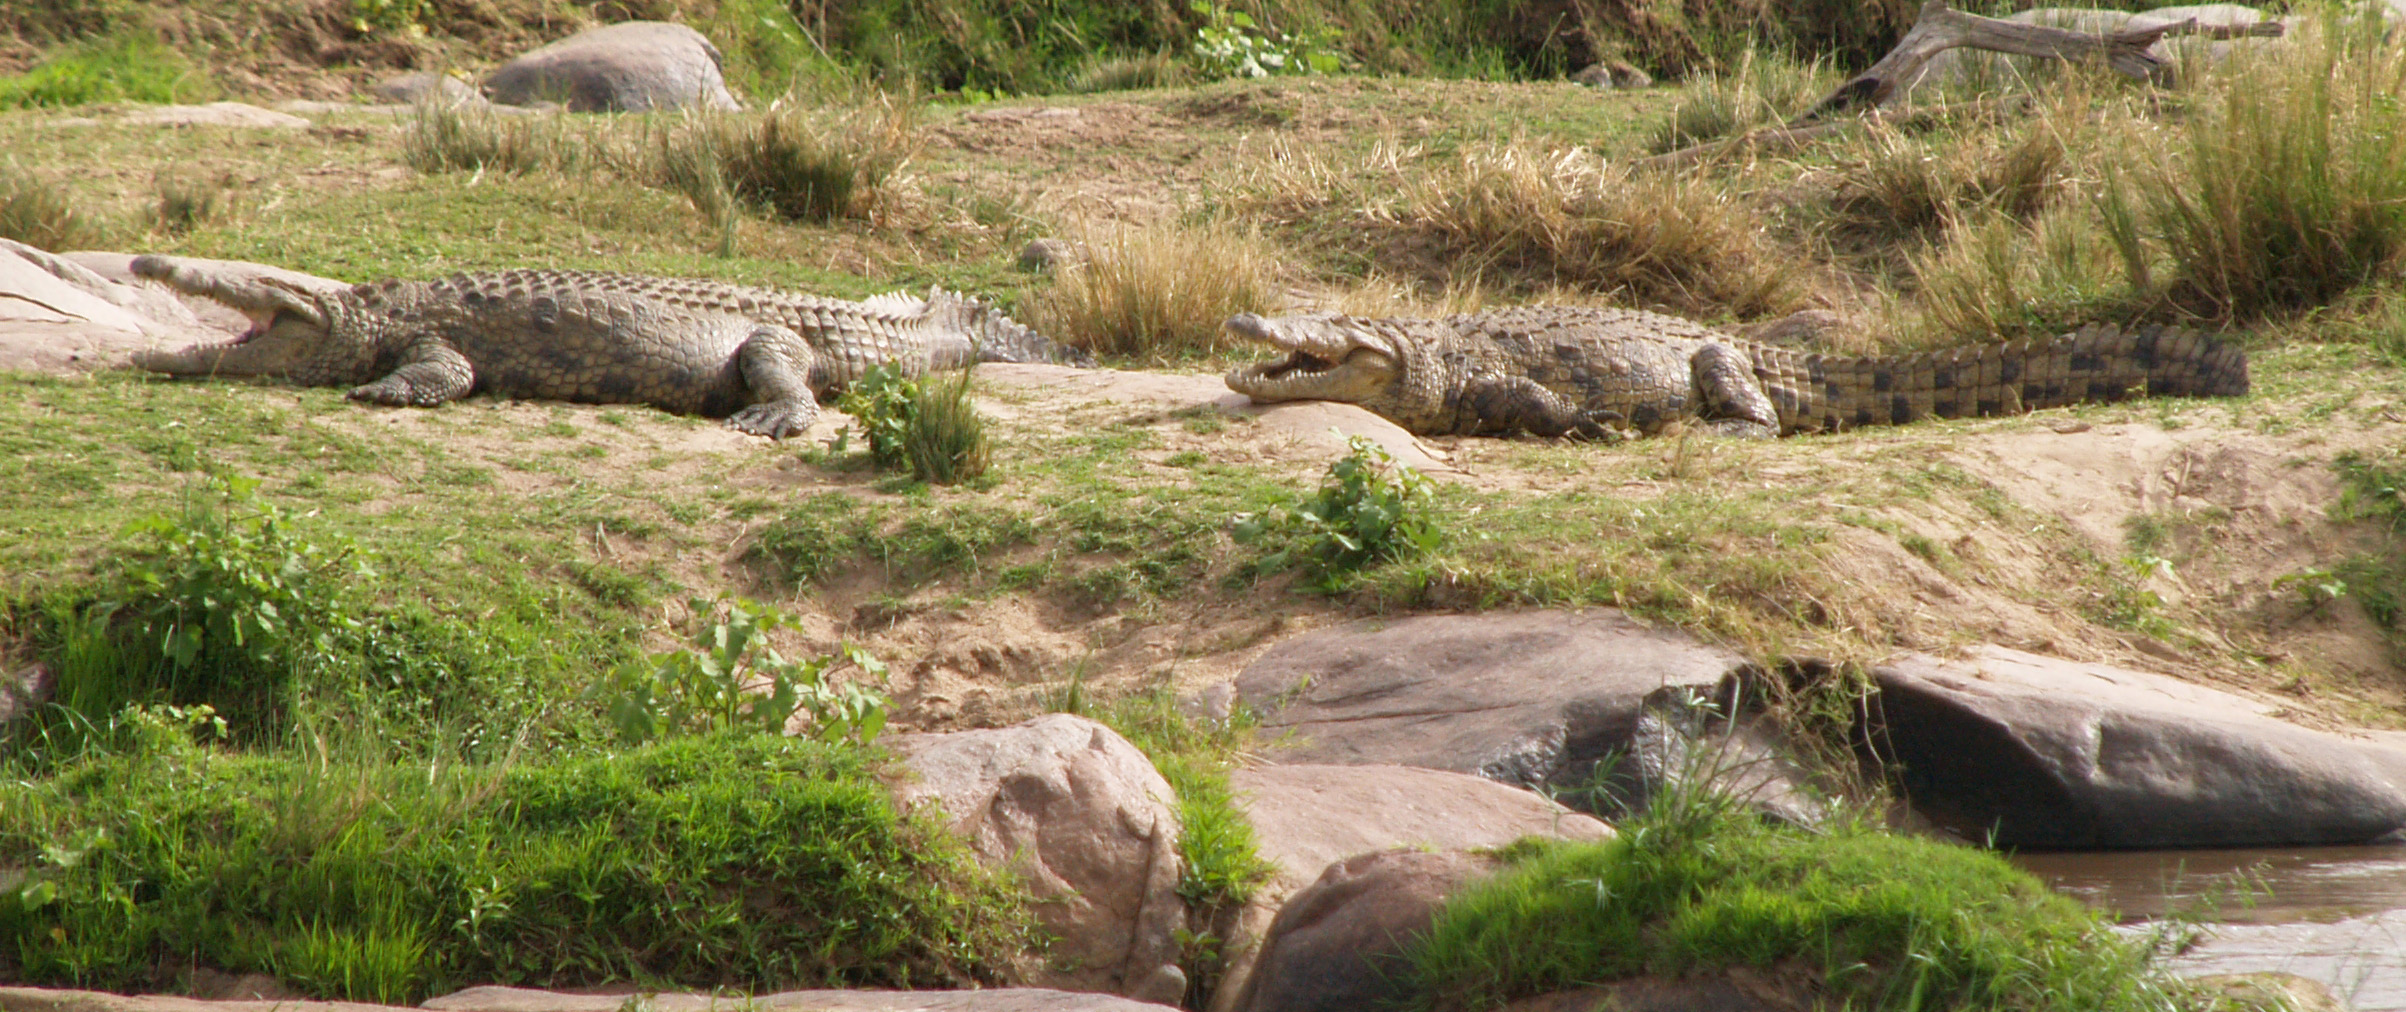 crocs resting on the sandbar, notice their fat bellies, mouths open because they are  heavily breathing digesting there meal